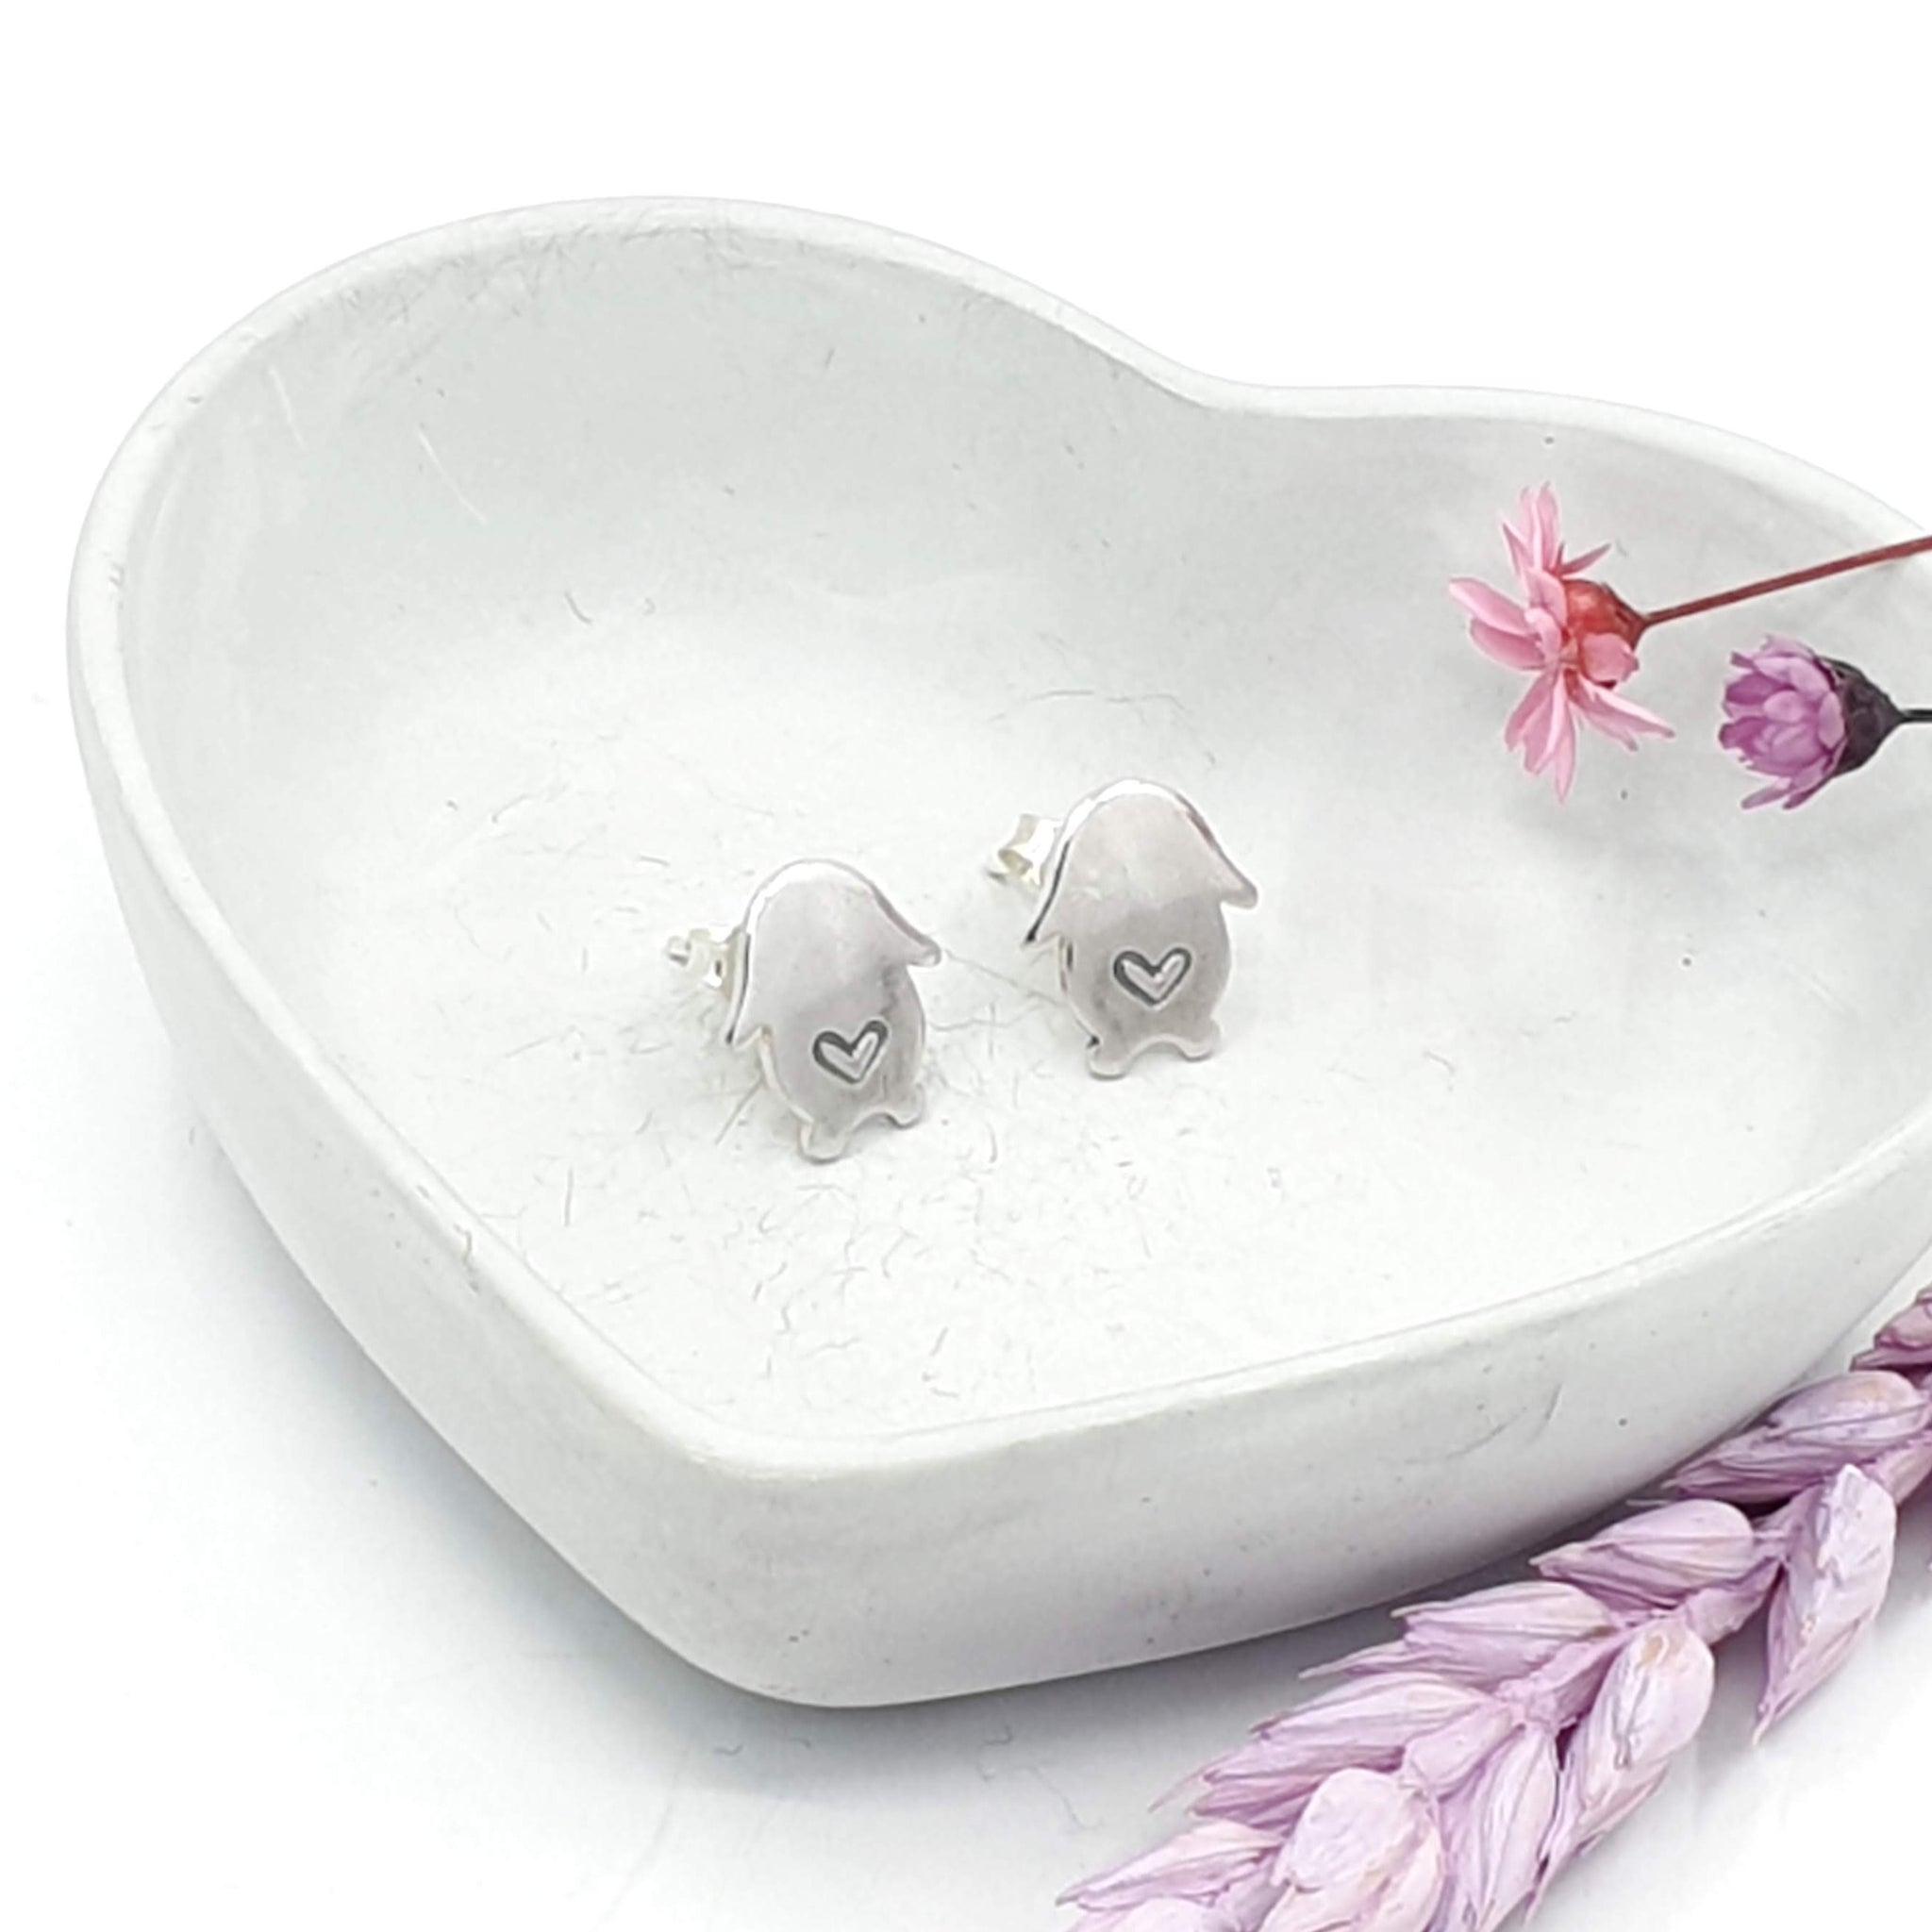 Silver stud earrings in the shape of a lop bunny. A love heart is engraved in the middle of each earring.